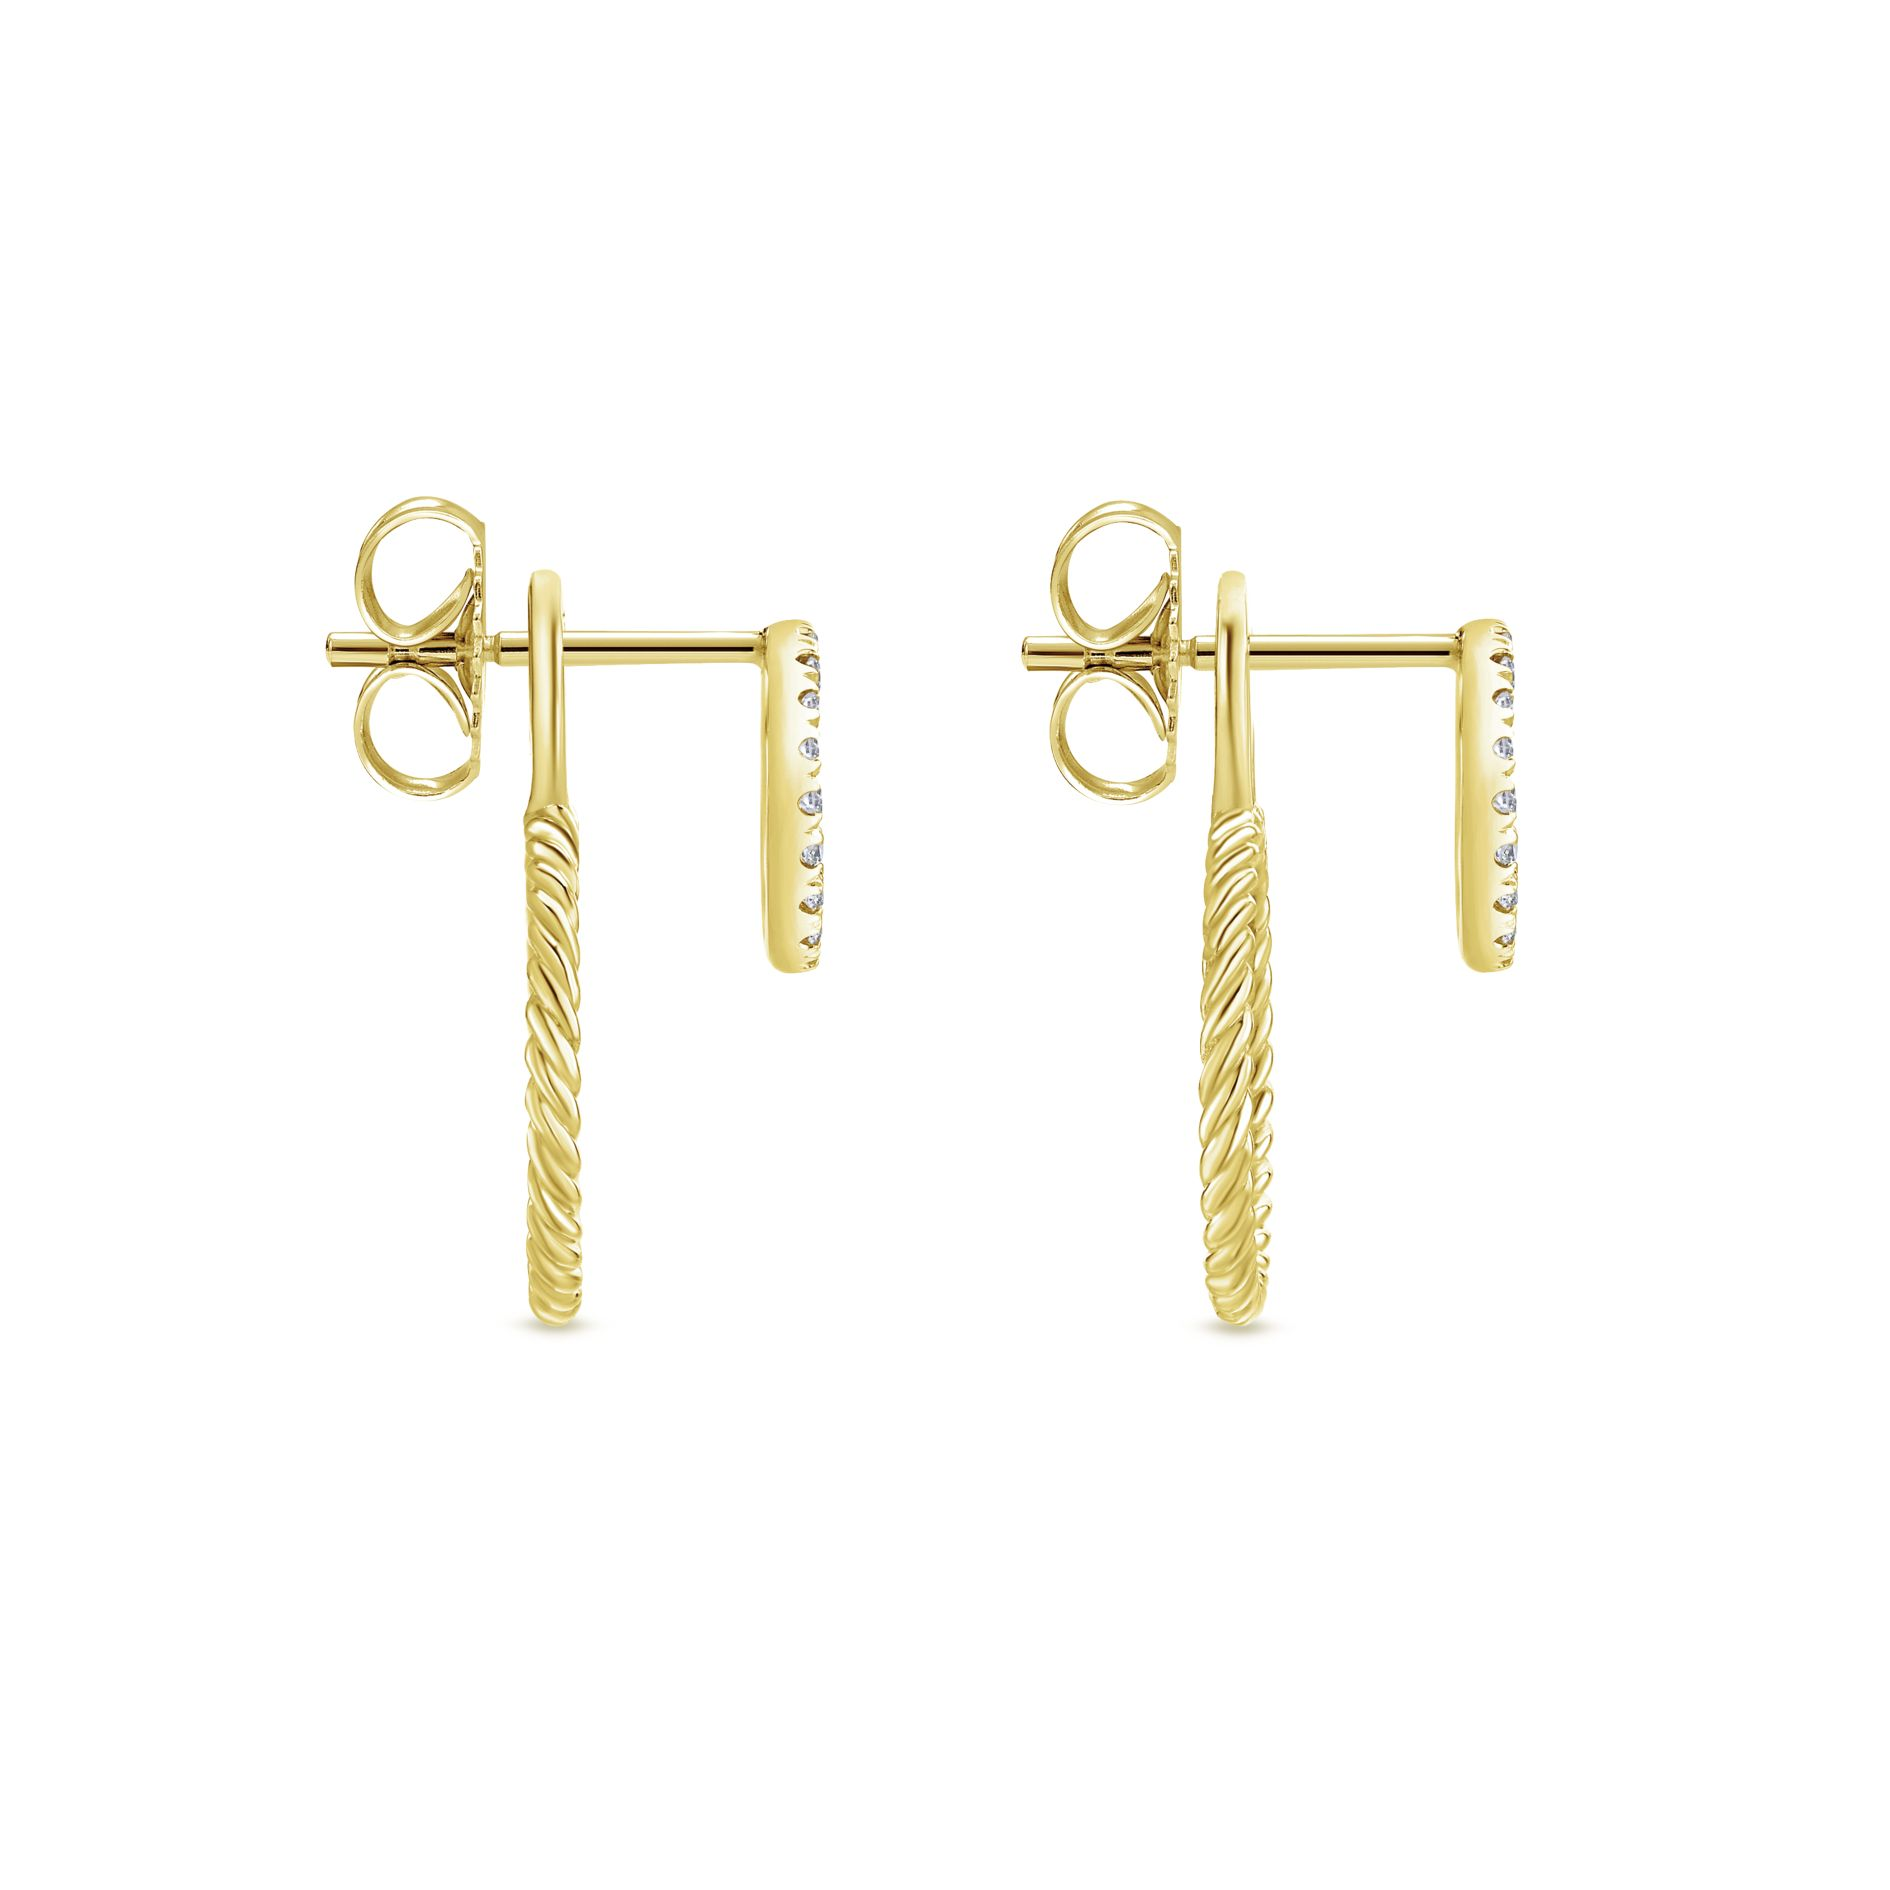 Earrings - YELLOW GOLD PEEK A BOO DOUBLE CIRCLE DIAMOND EARRINGS - image #3